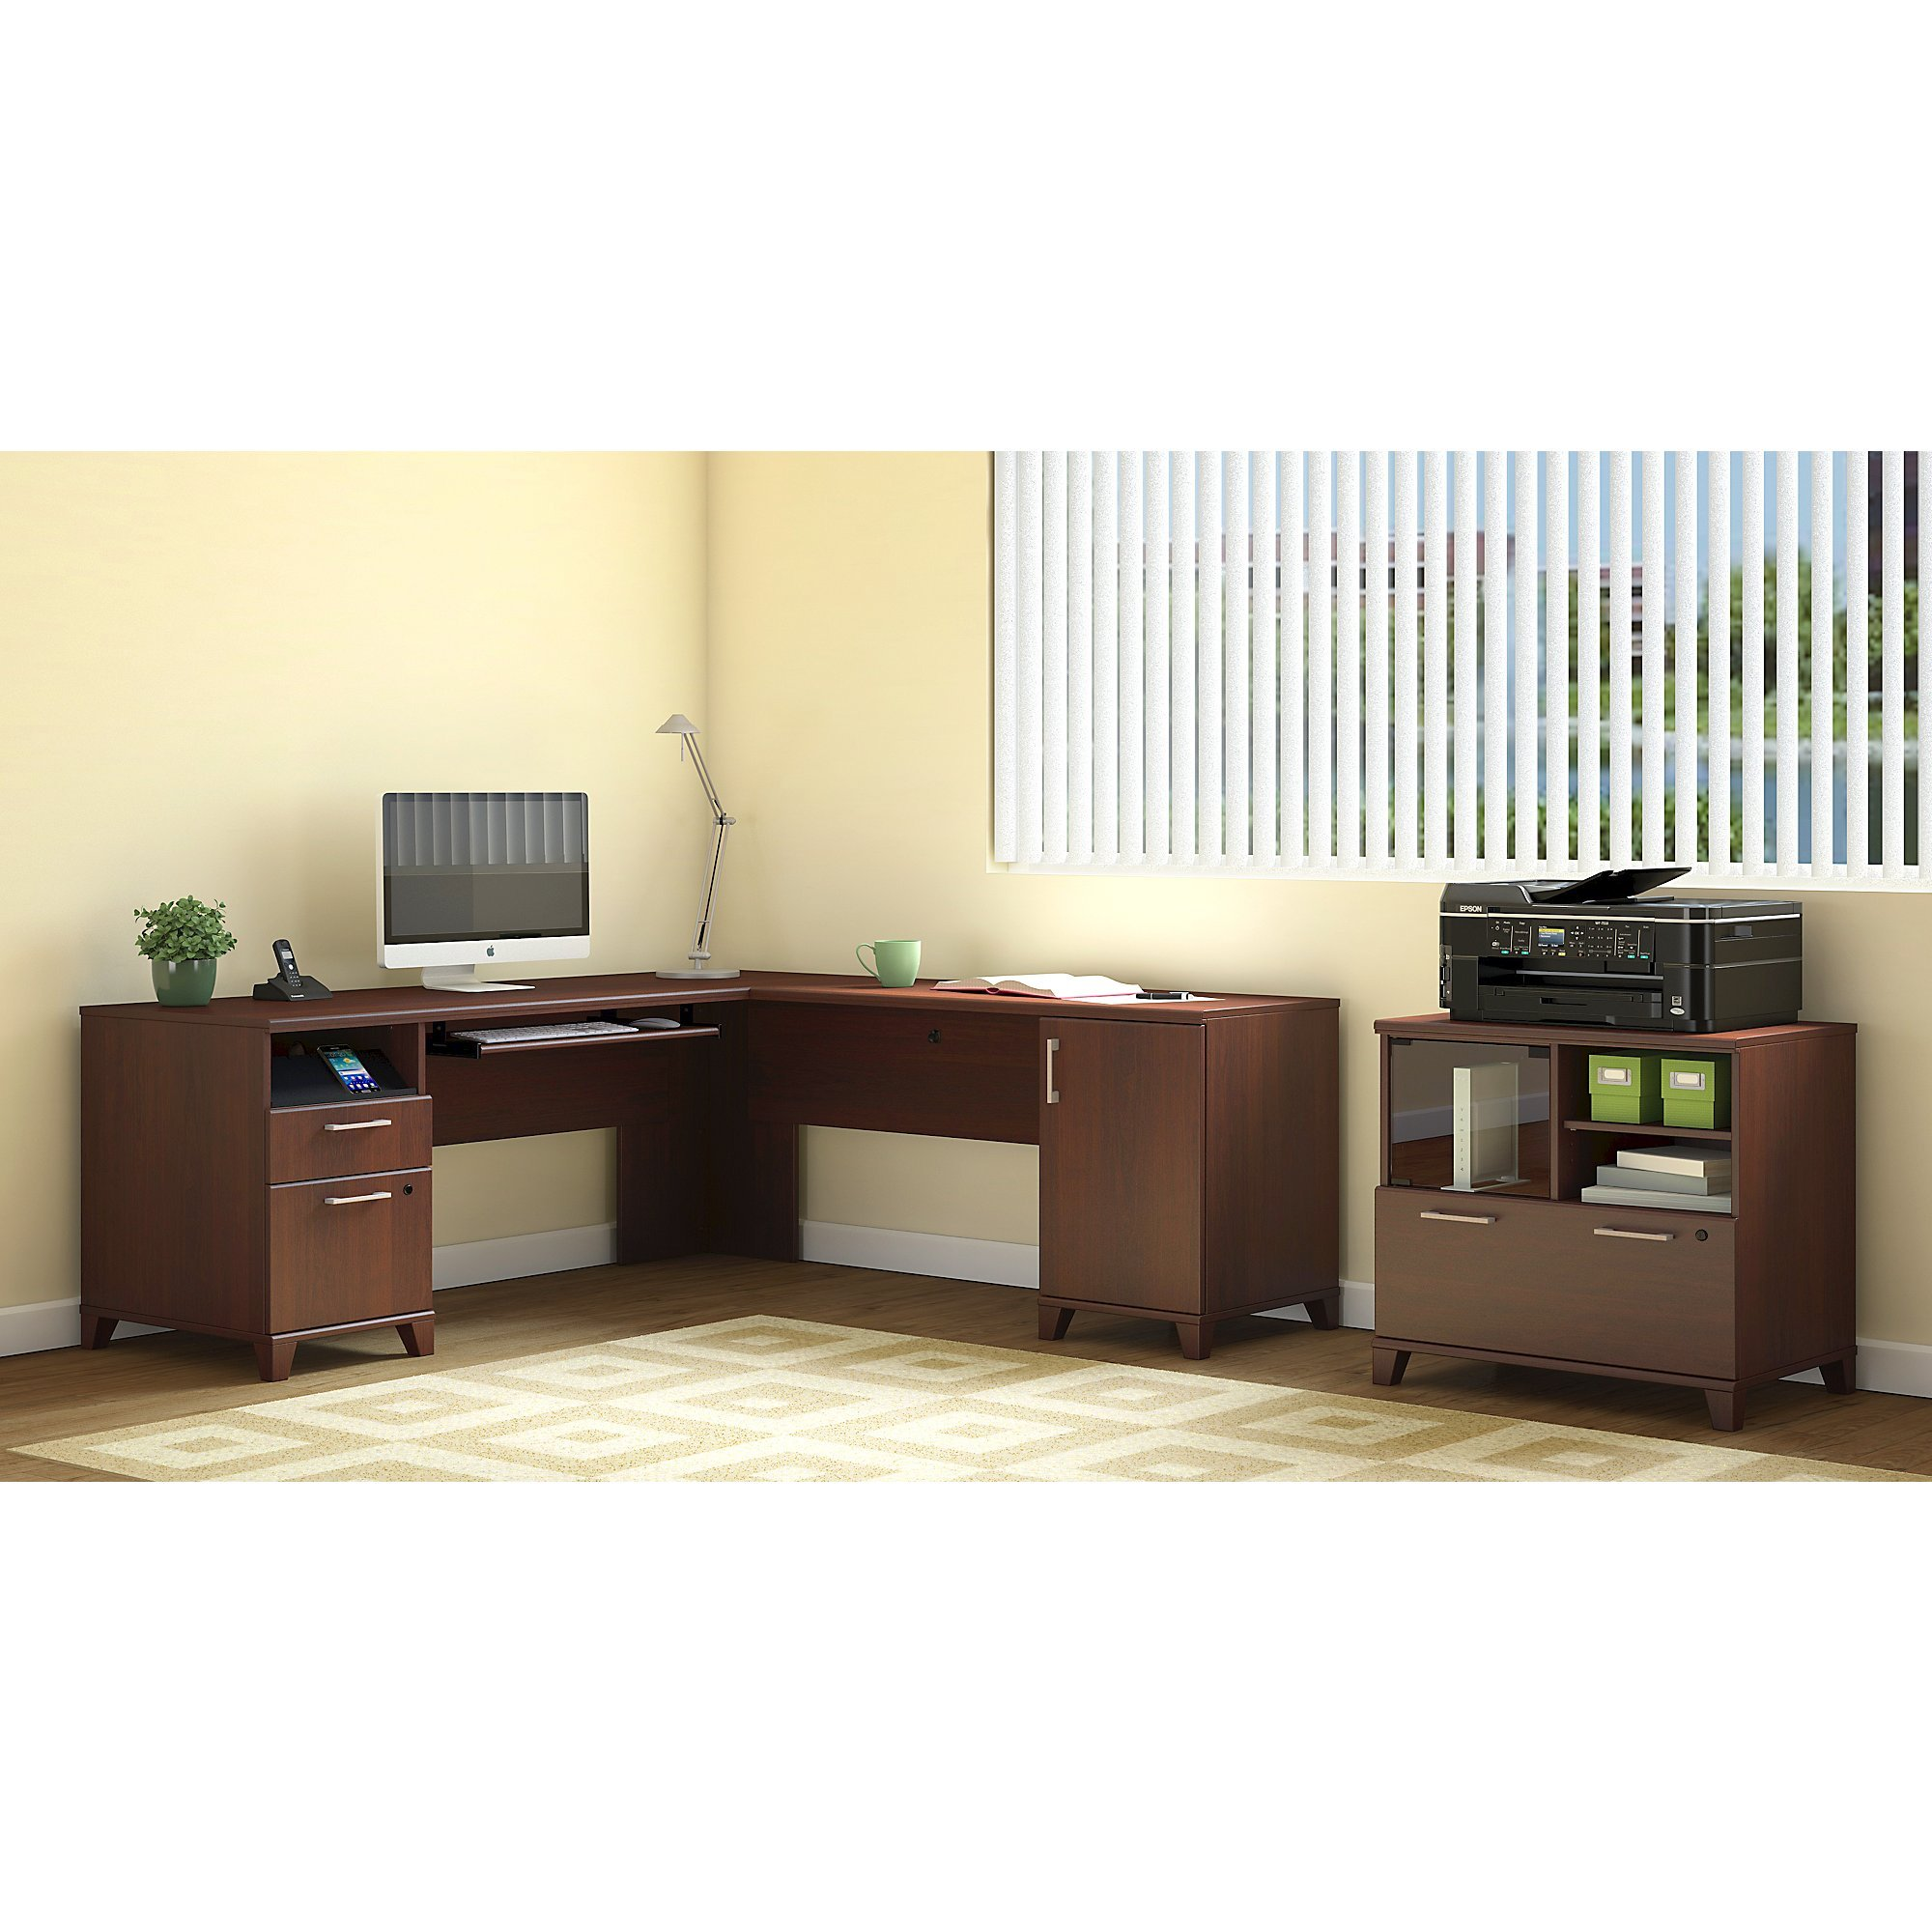 Achieve L Shaped Desk with Printer Stand File Cabinet by Bush Furniture